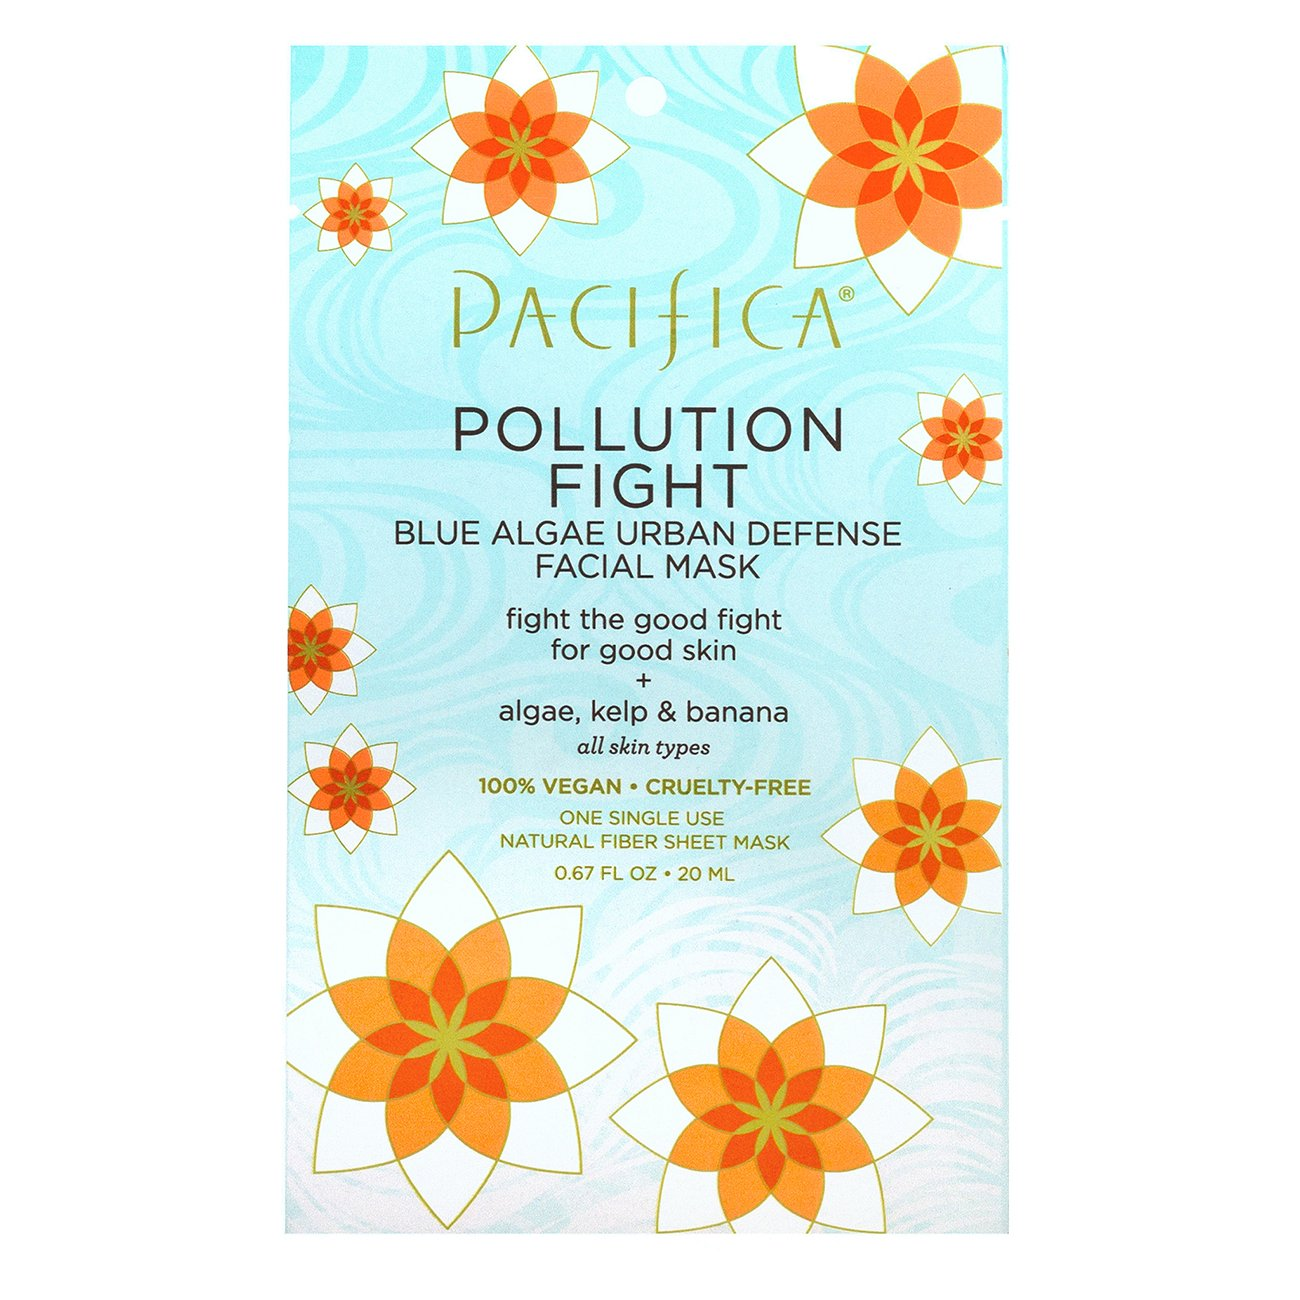 Pollution Fight Facial Mask - $4I have never been a big mask person, until I discovered these amazing masks from Pacifica at Target. Pop one on, depending on what sort of treatment I need, wait twenty minutes and gently massage the remaining product into your skin. No need to rinse.